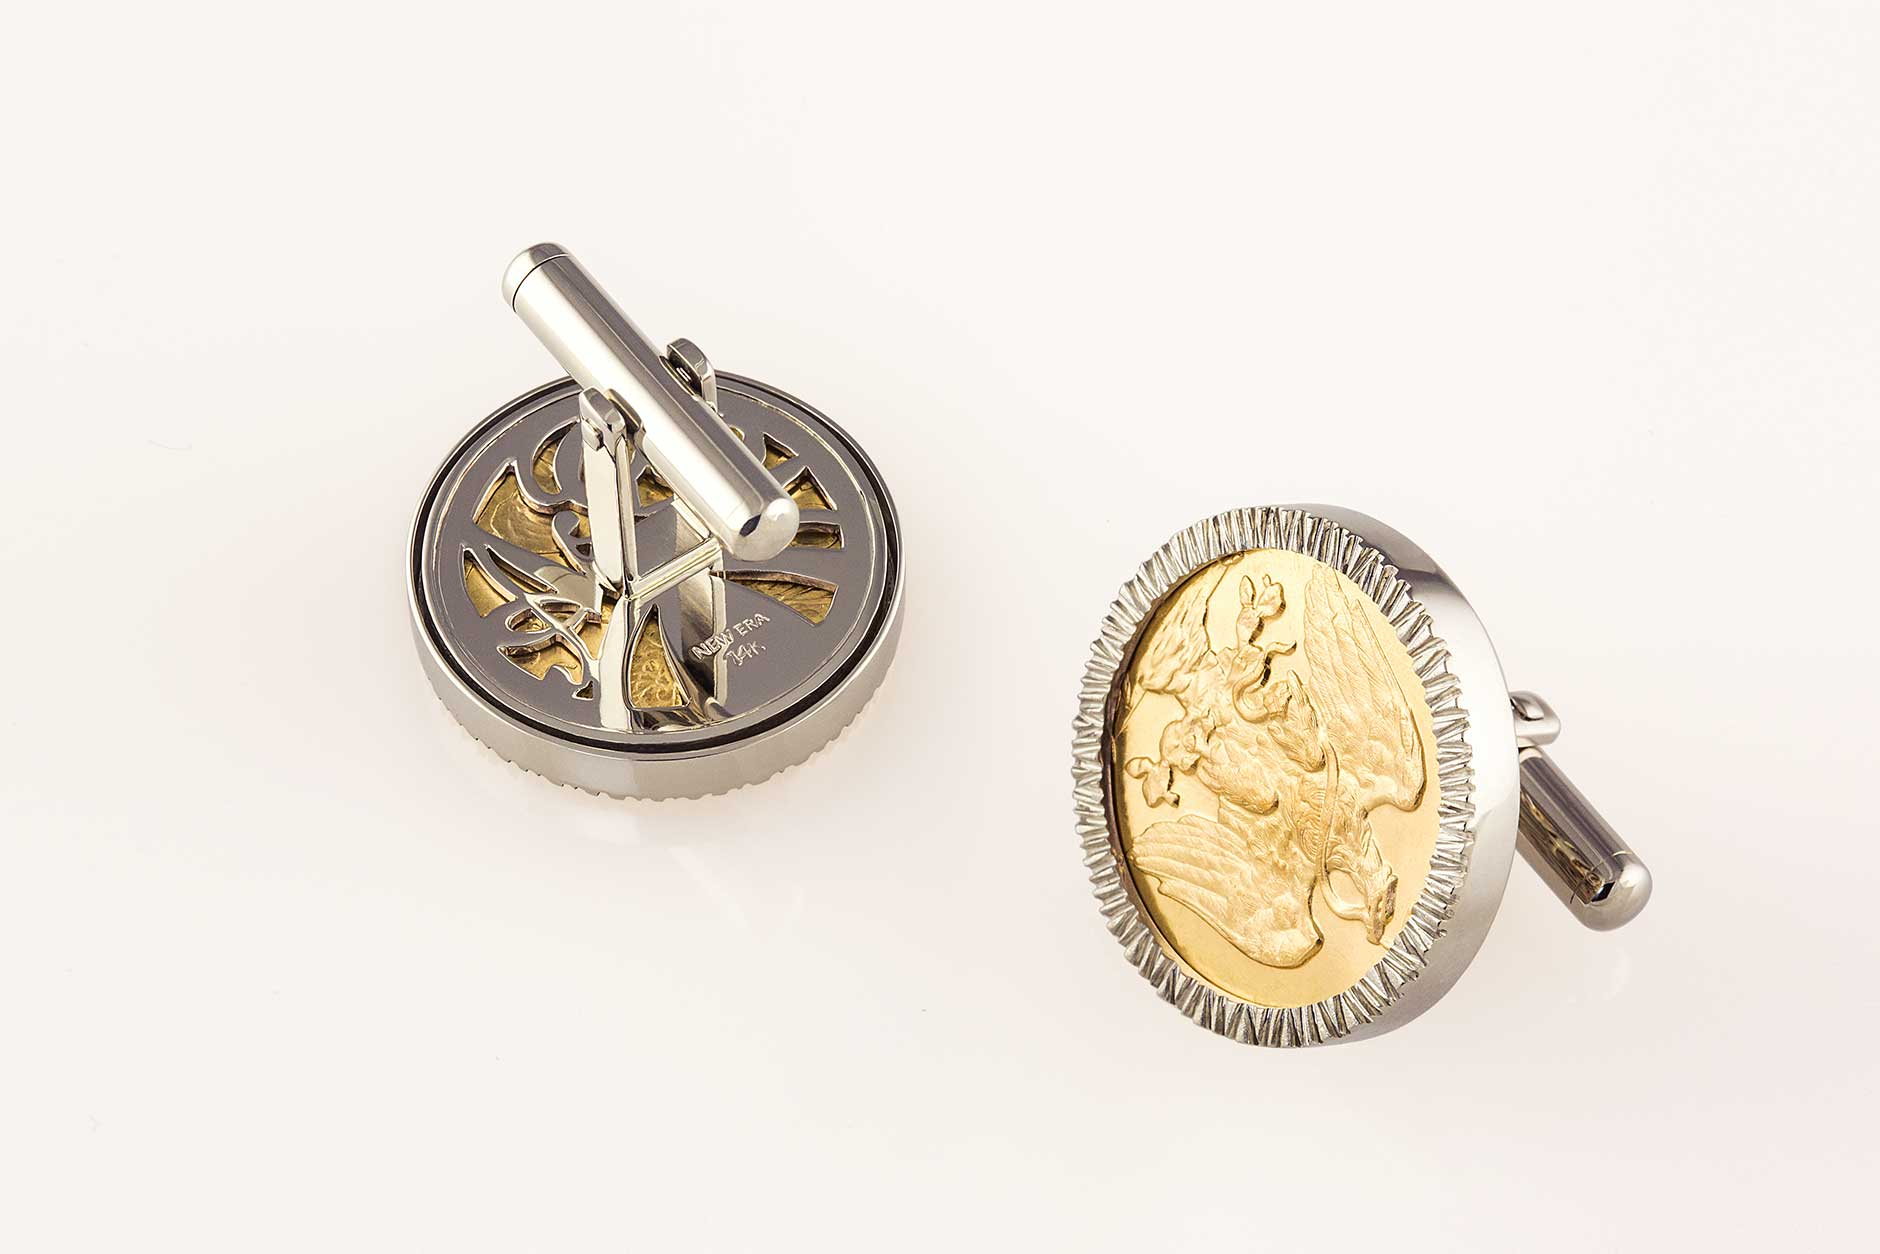 Handmade 14k White Gold Custom Antique Coin Cufflinks with Swivel Backs - NEWA Goldsmith